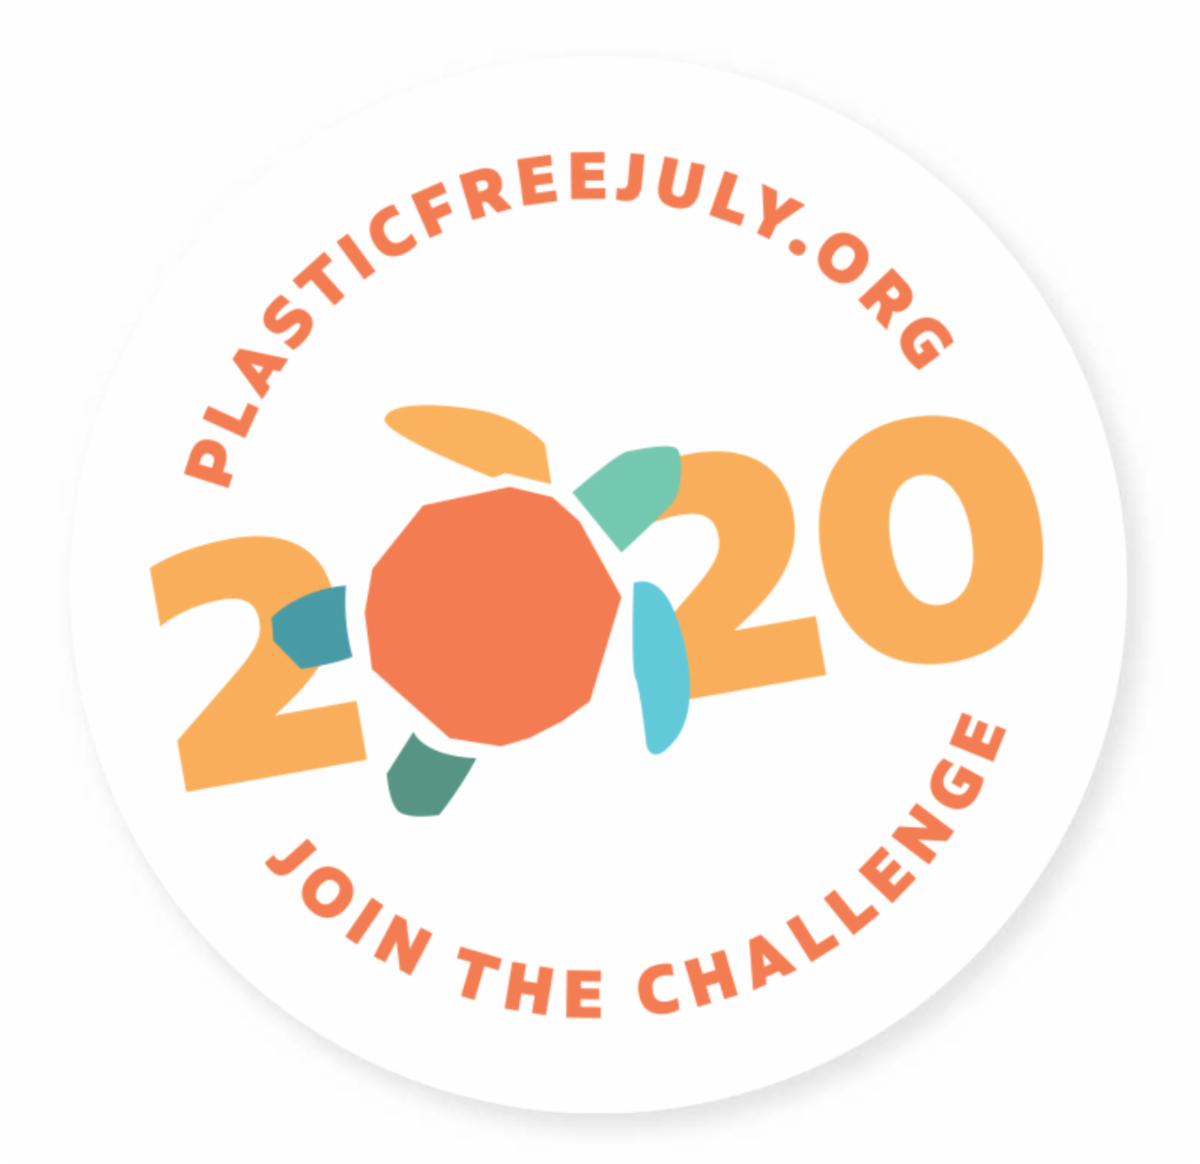 plasticfreejuly.org Join the challenge. 2020